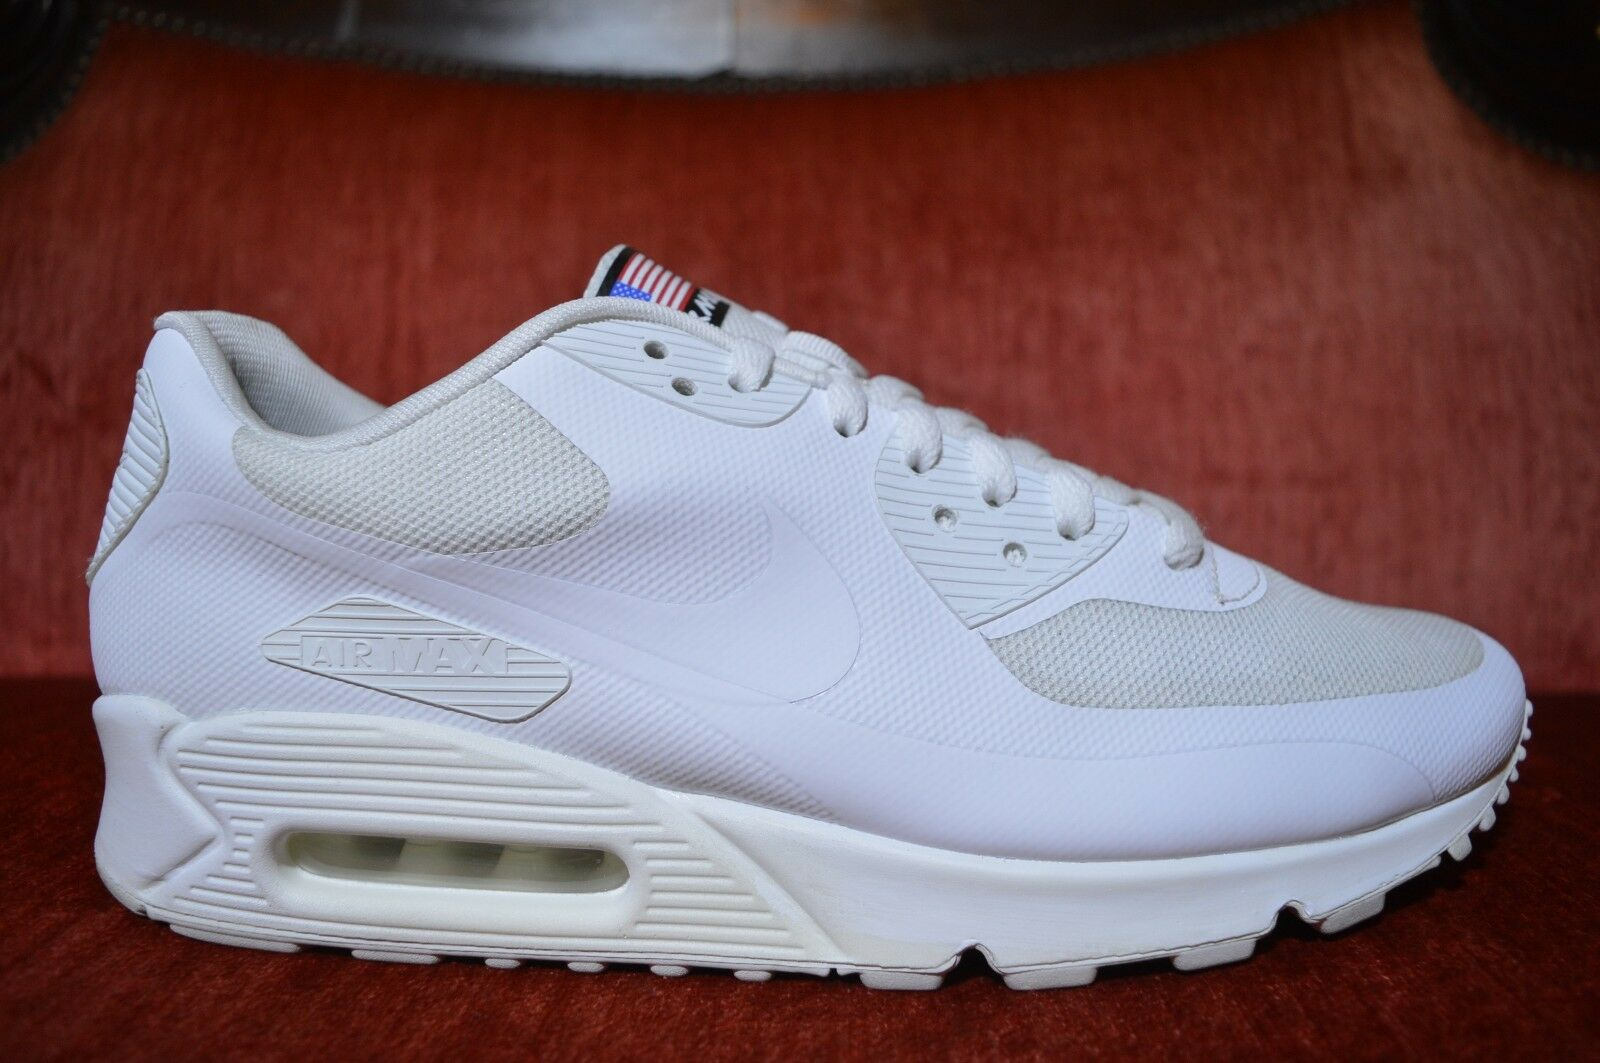 VNDS NIKE AIR MAX 90 HYP HYPERFUSE QS  USA  WHITE WHITE 613841-110 Size 11